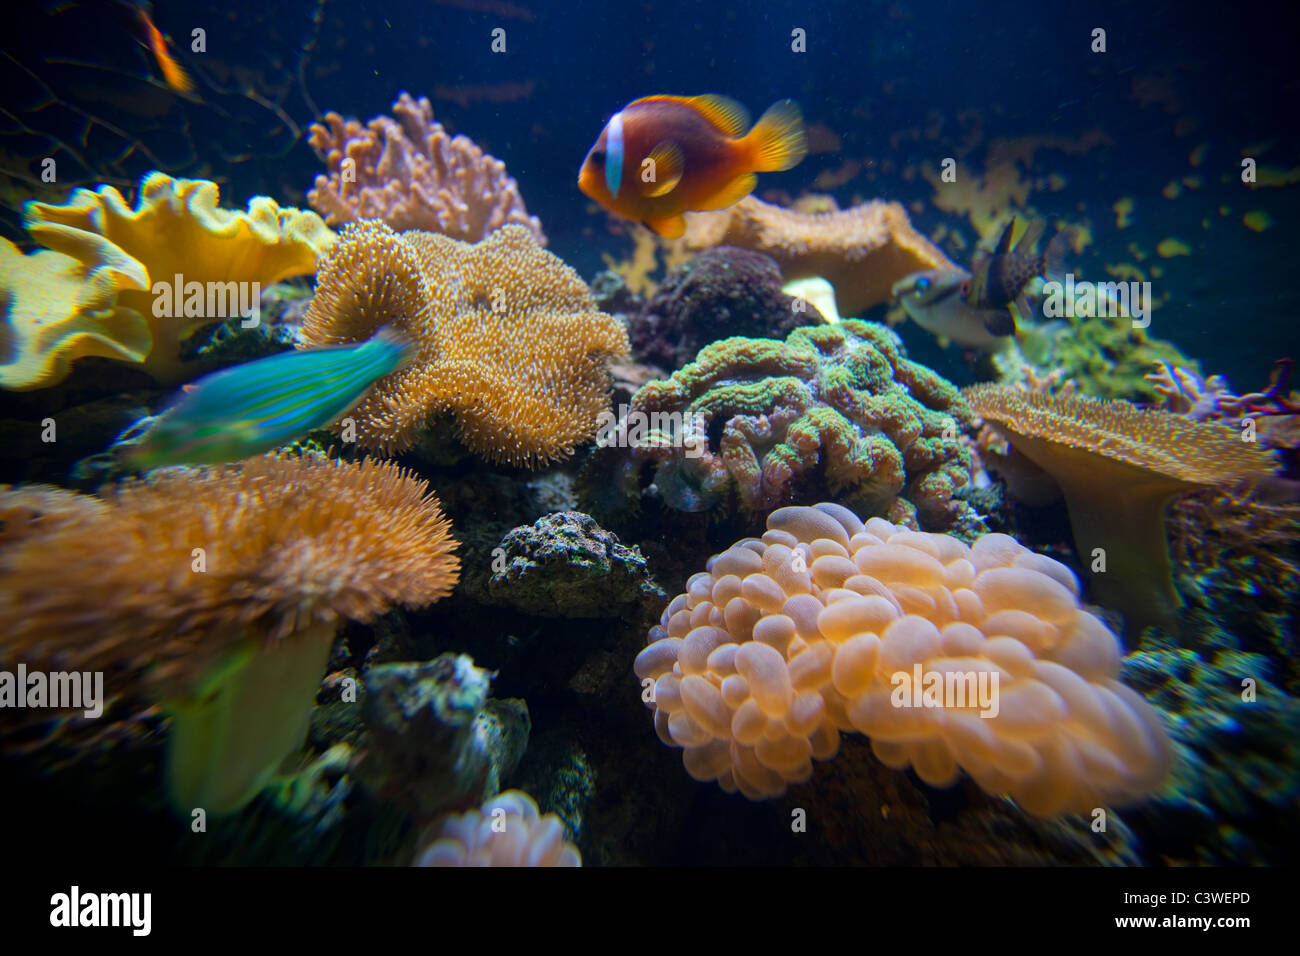 Salt Water Aquarium, Kula Eco Park; Vitu Levu; Fiji - Stock Image